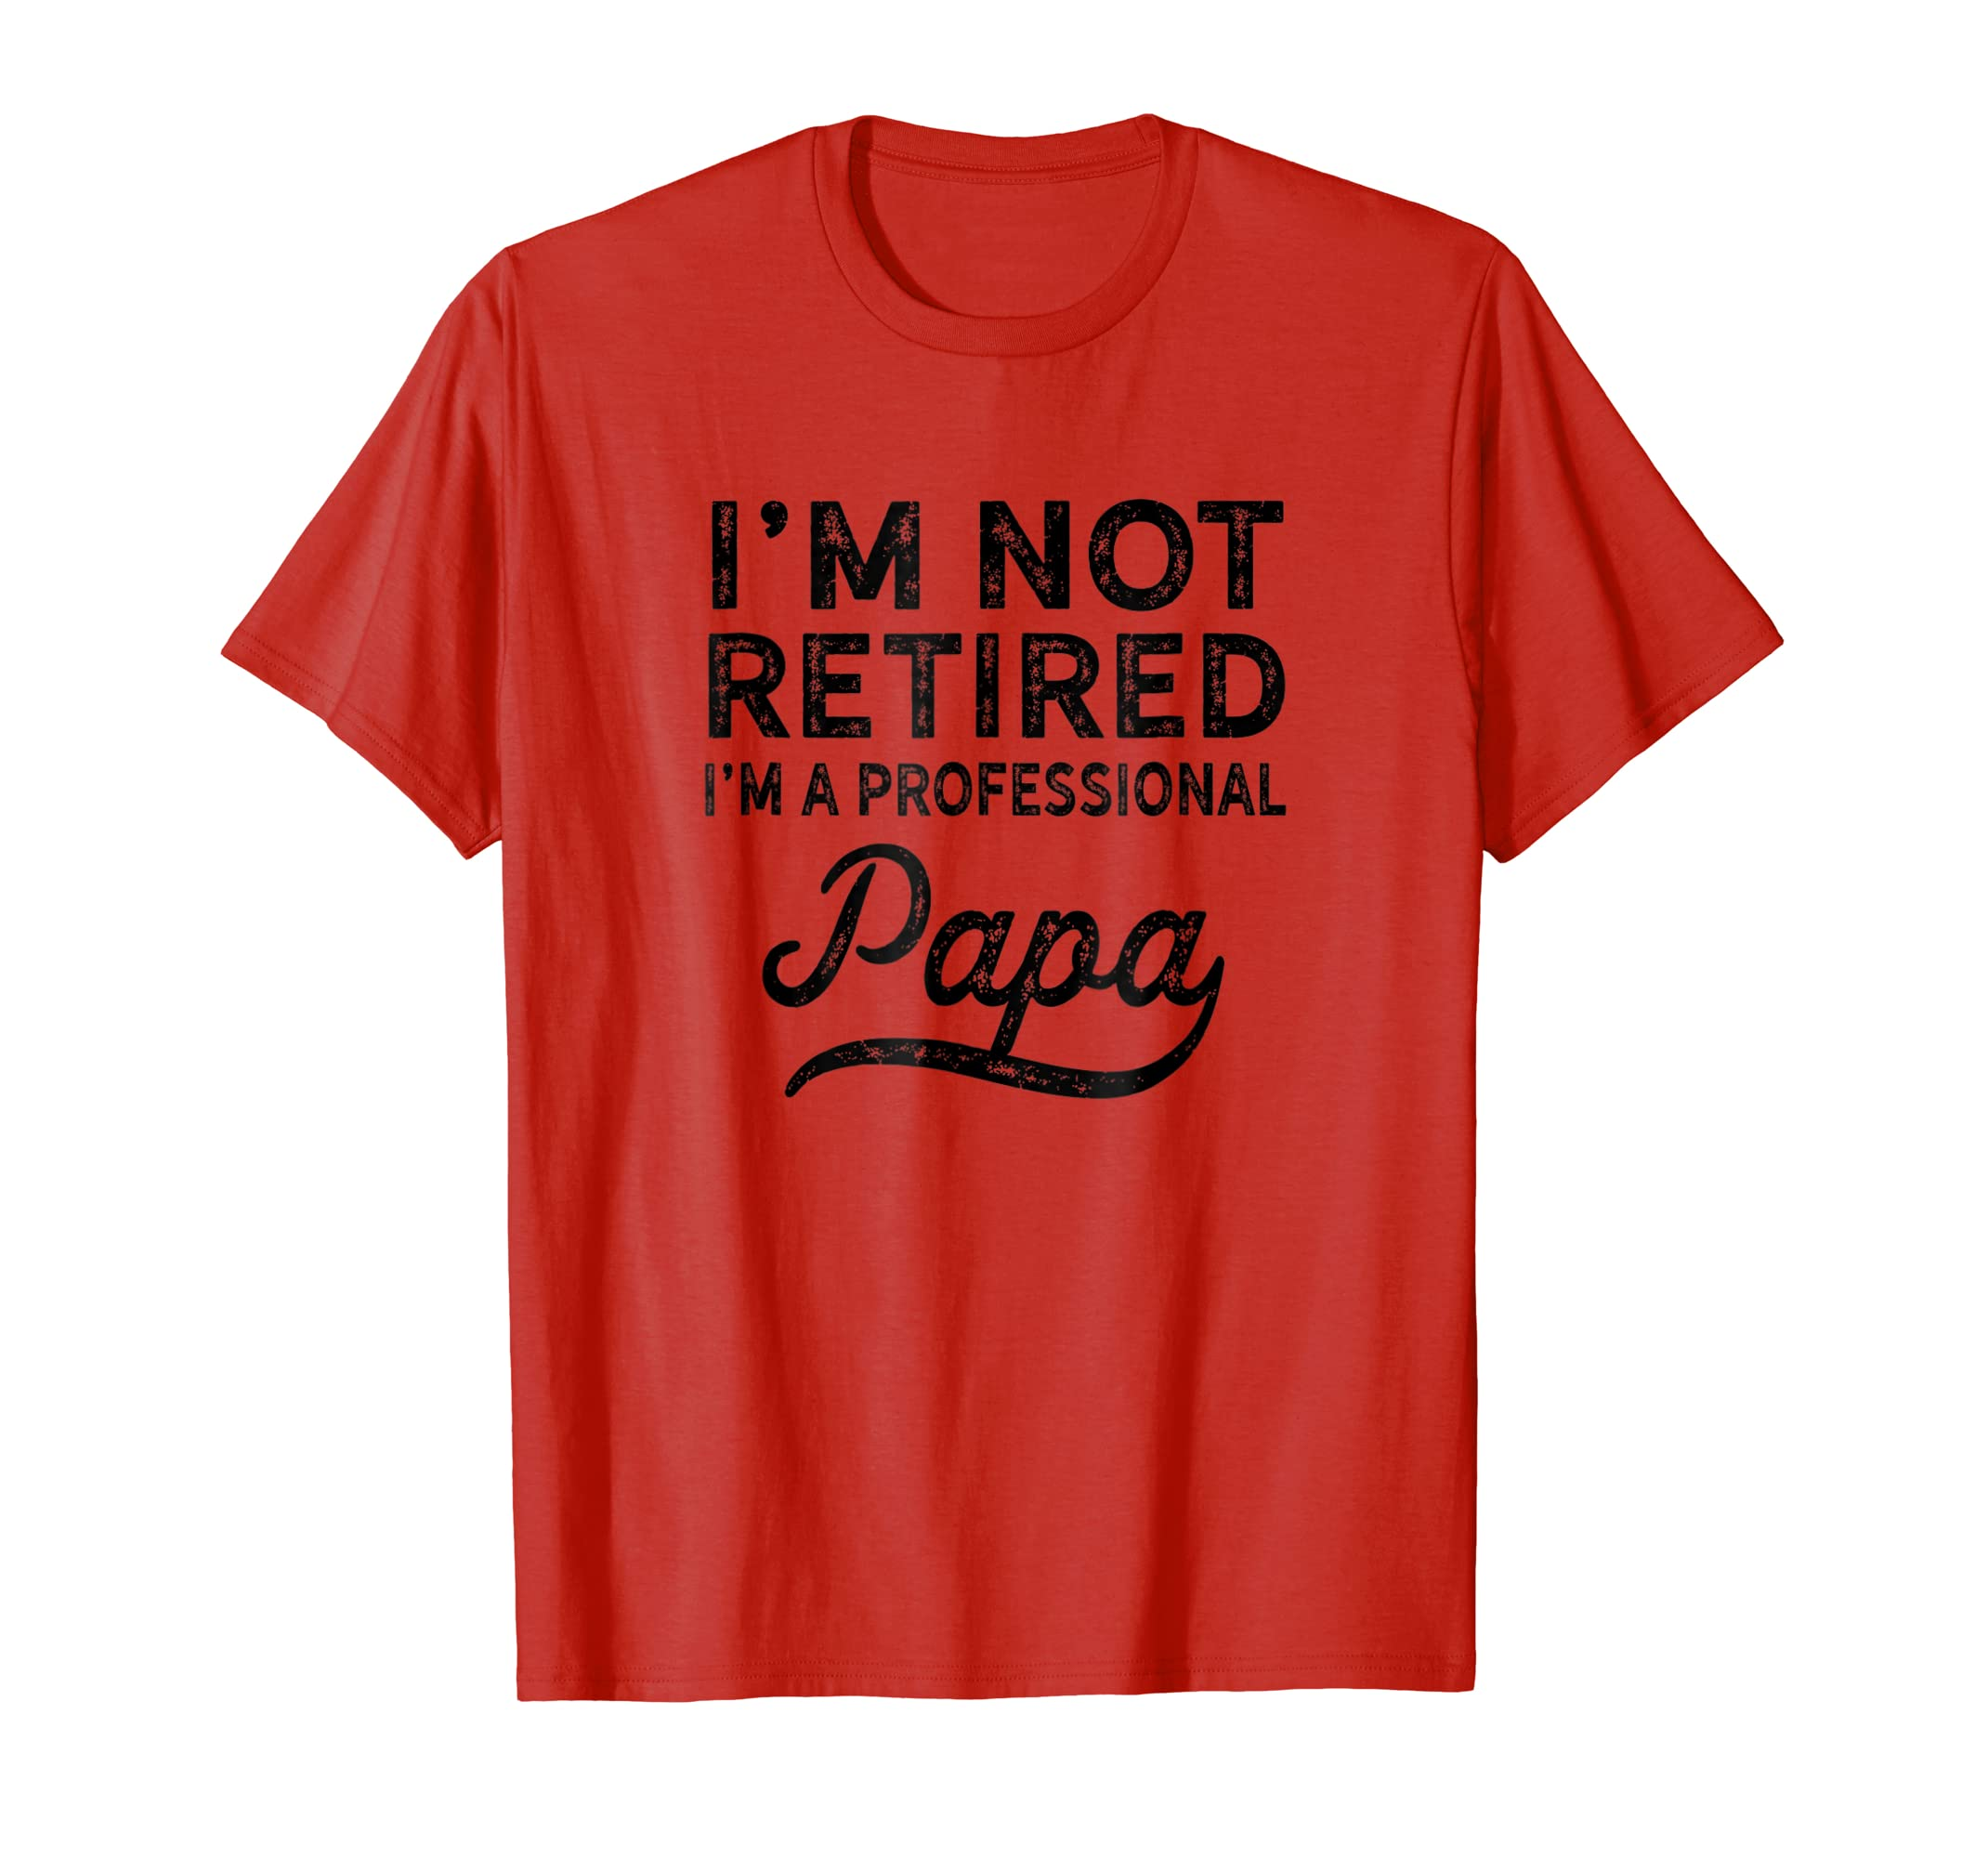 043ccb4d I'm Not Retired A Professional Papa T Shirt Fathers Day Gift- TPT - Best  Selling T-Shirts